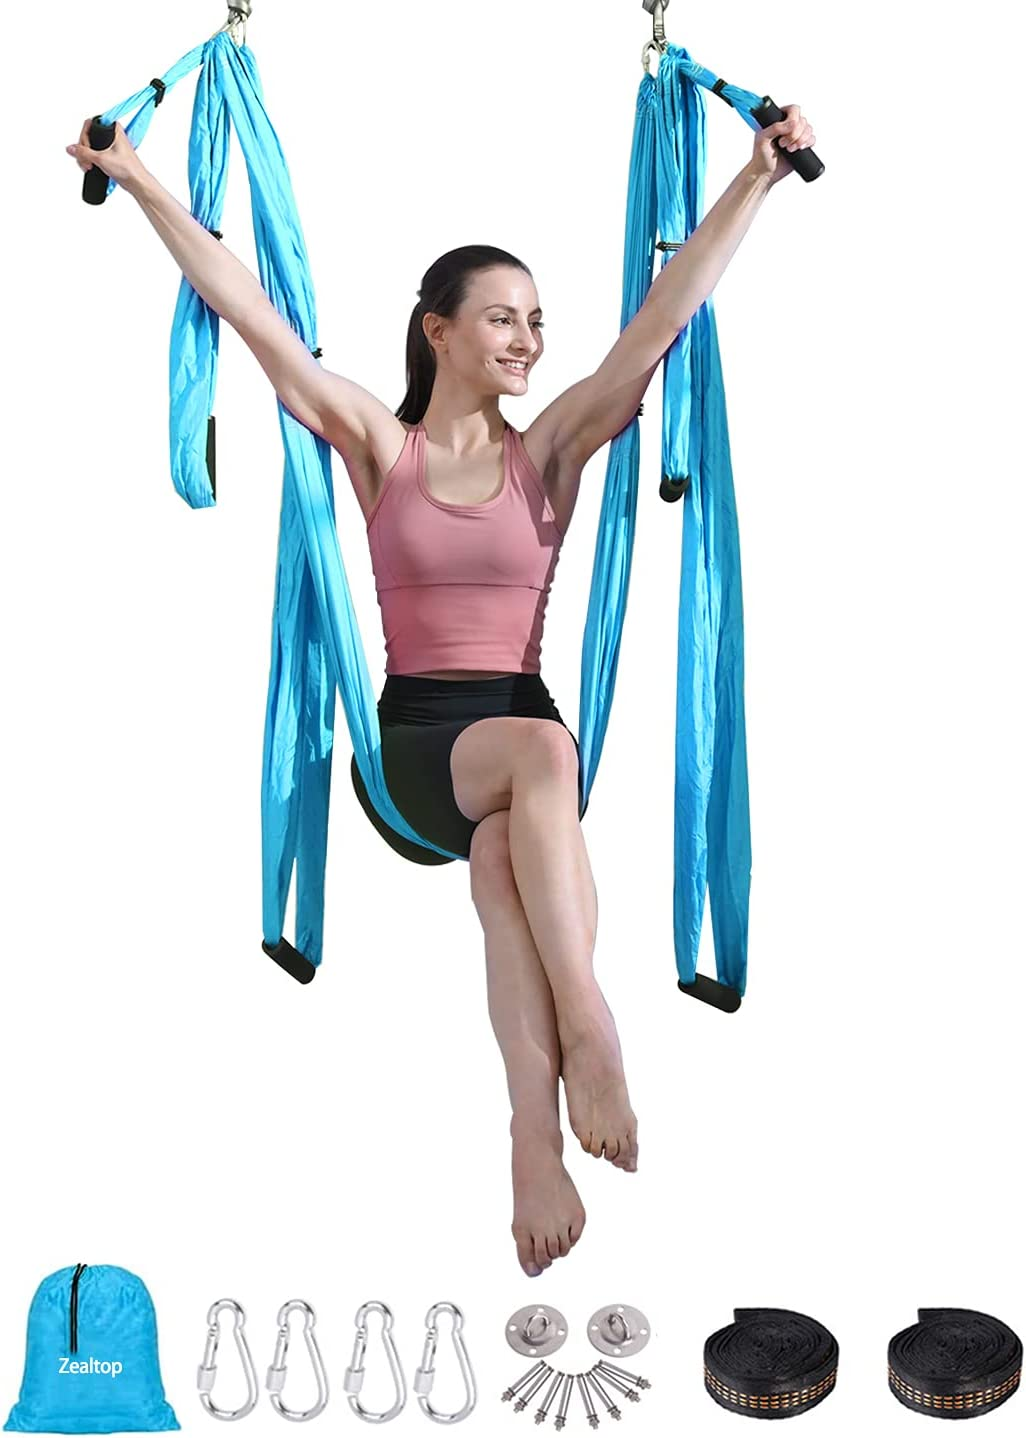 Aerial Yoga Flying Yoga Swing Set Yoga Hammock Trapeze Sling Inversion Tool for Gym Home Fitness (with Ceiling Anchors and 2 Extensions Straps) Blue